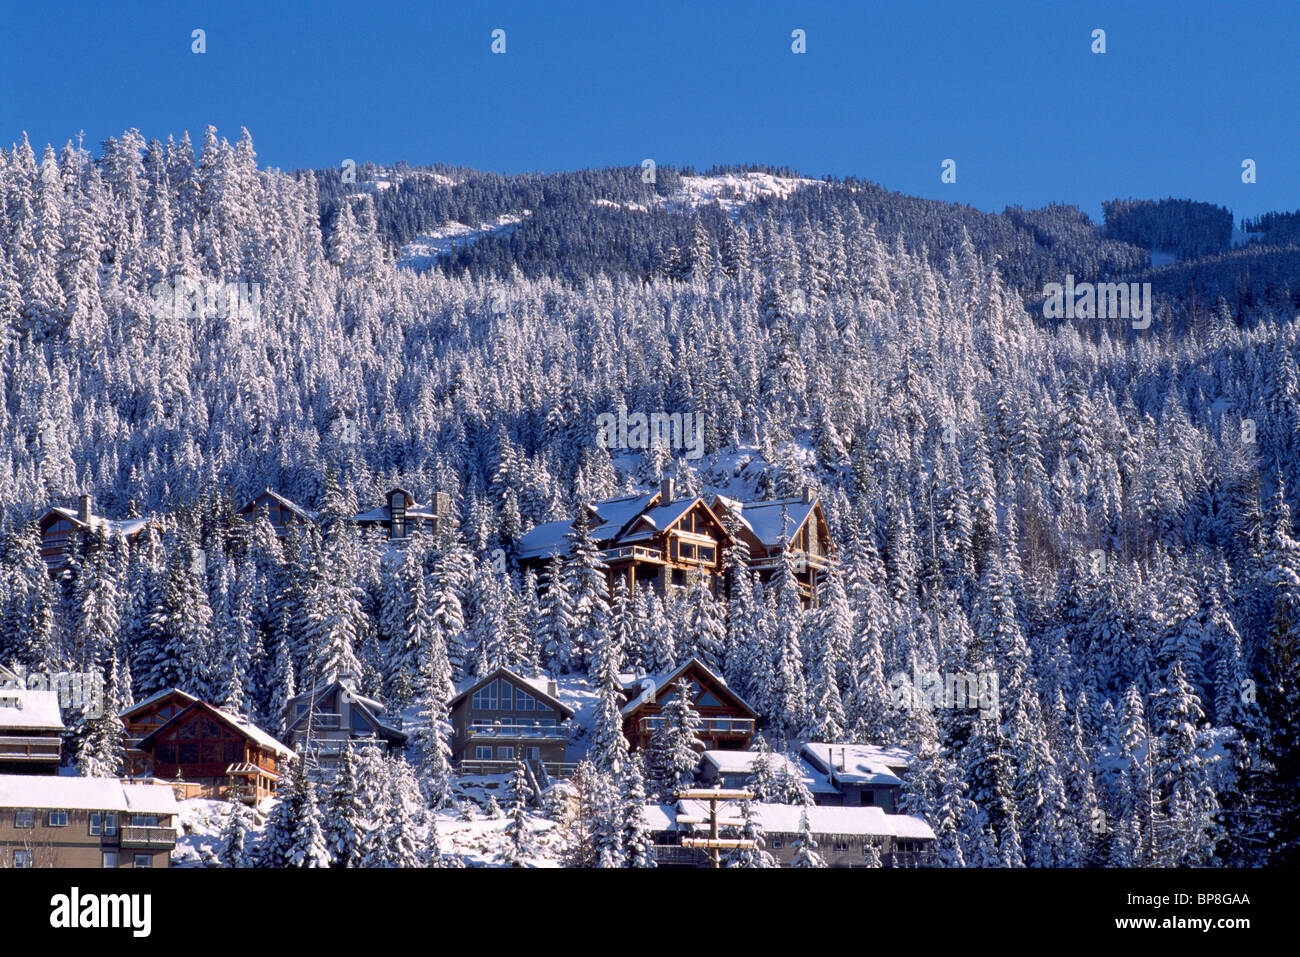 whistler, bc, british columbia, canada - ski resort village, winter